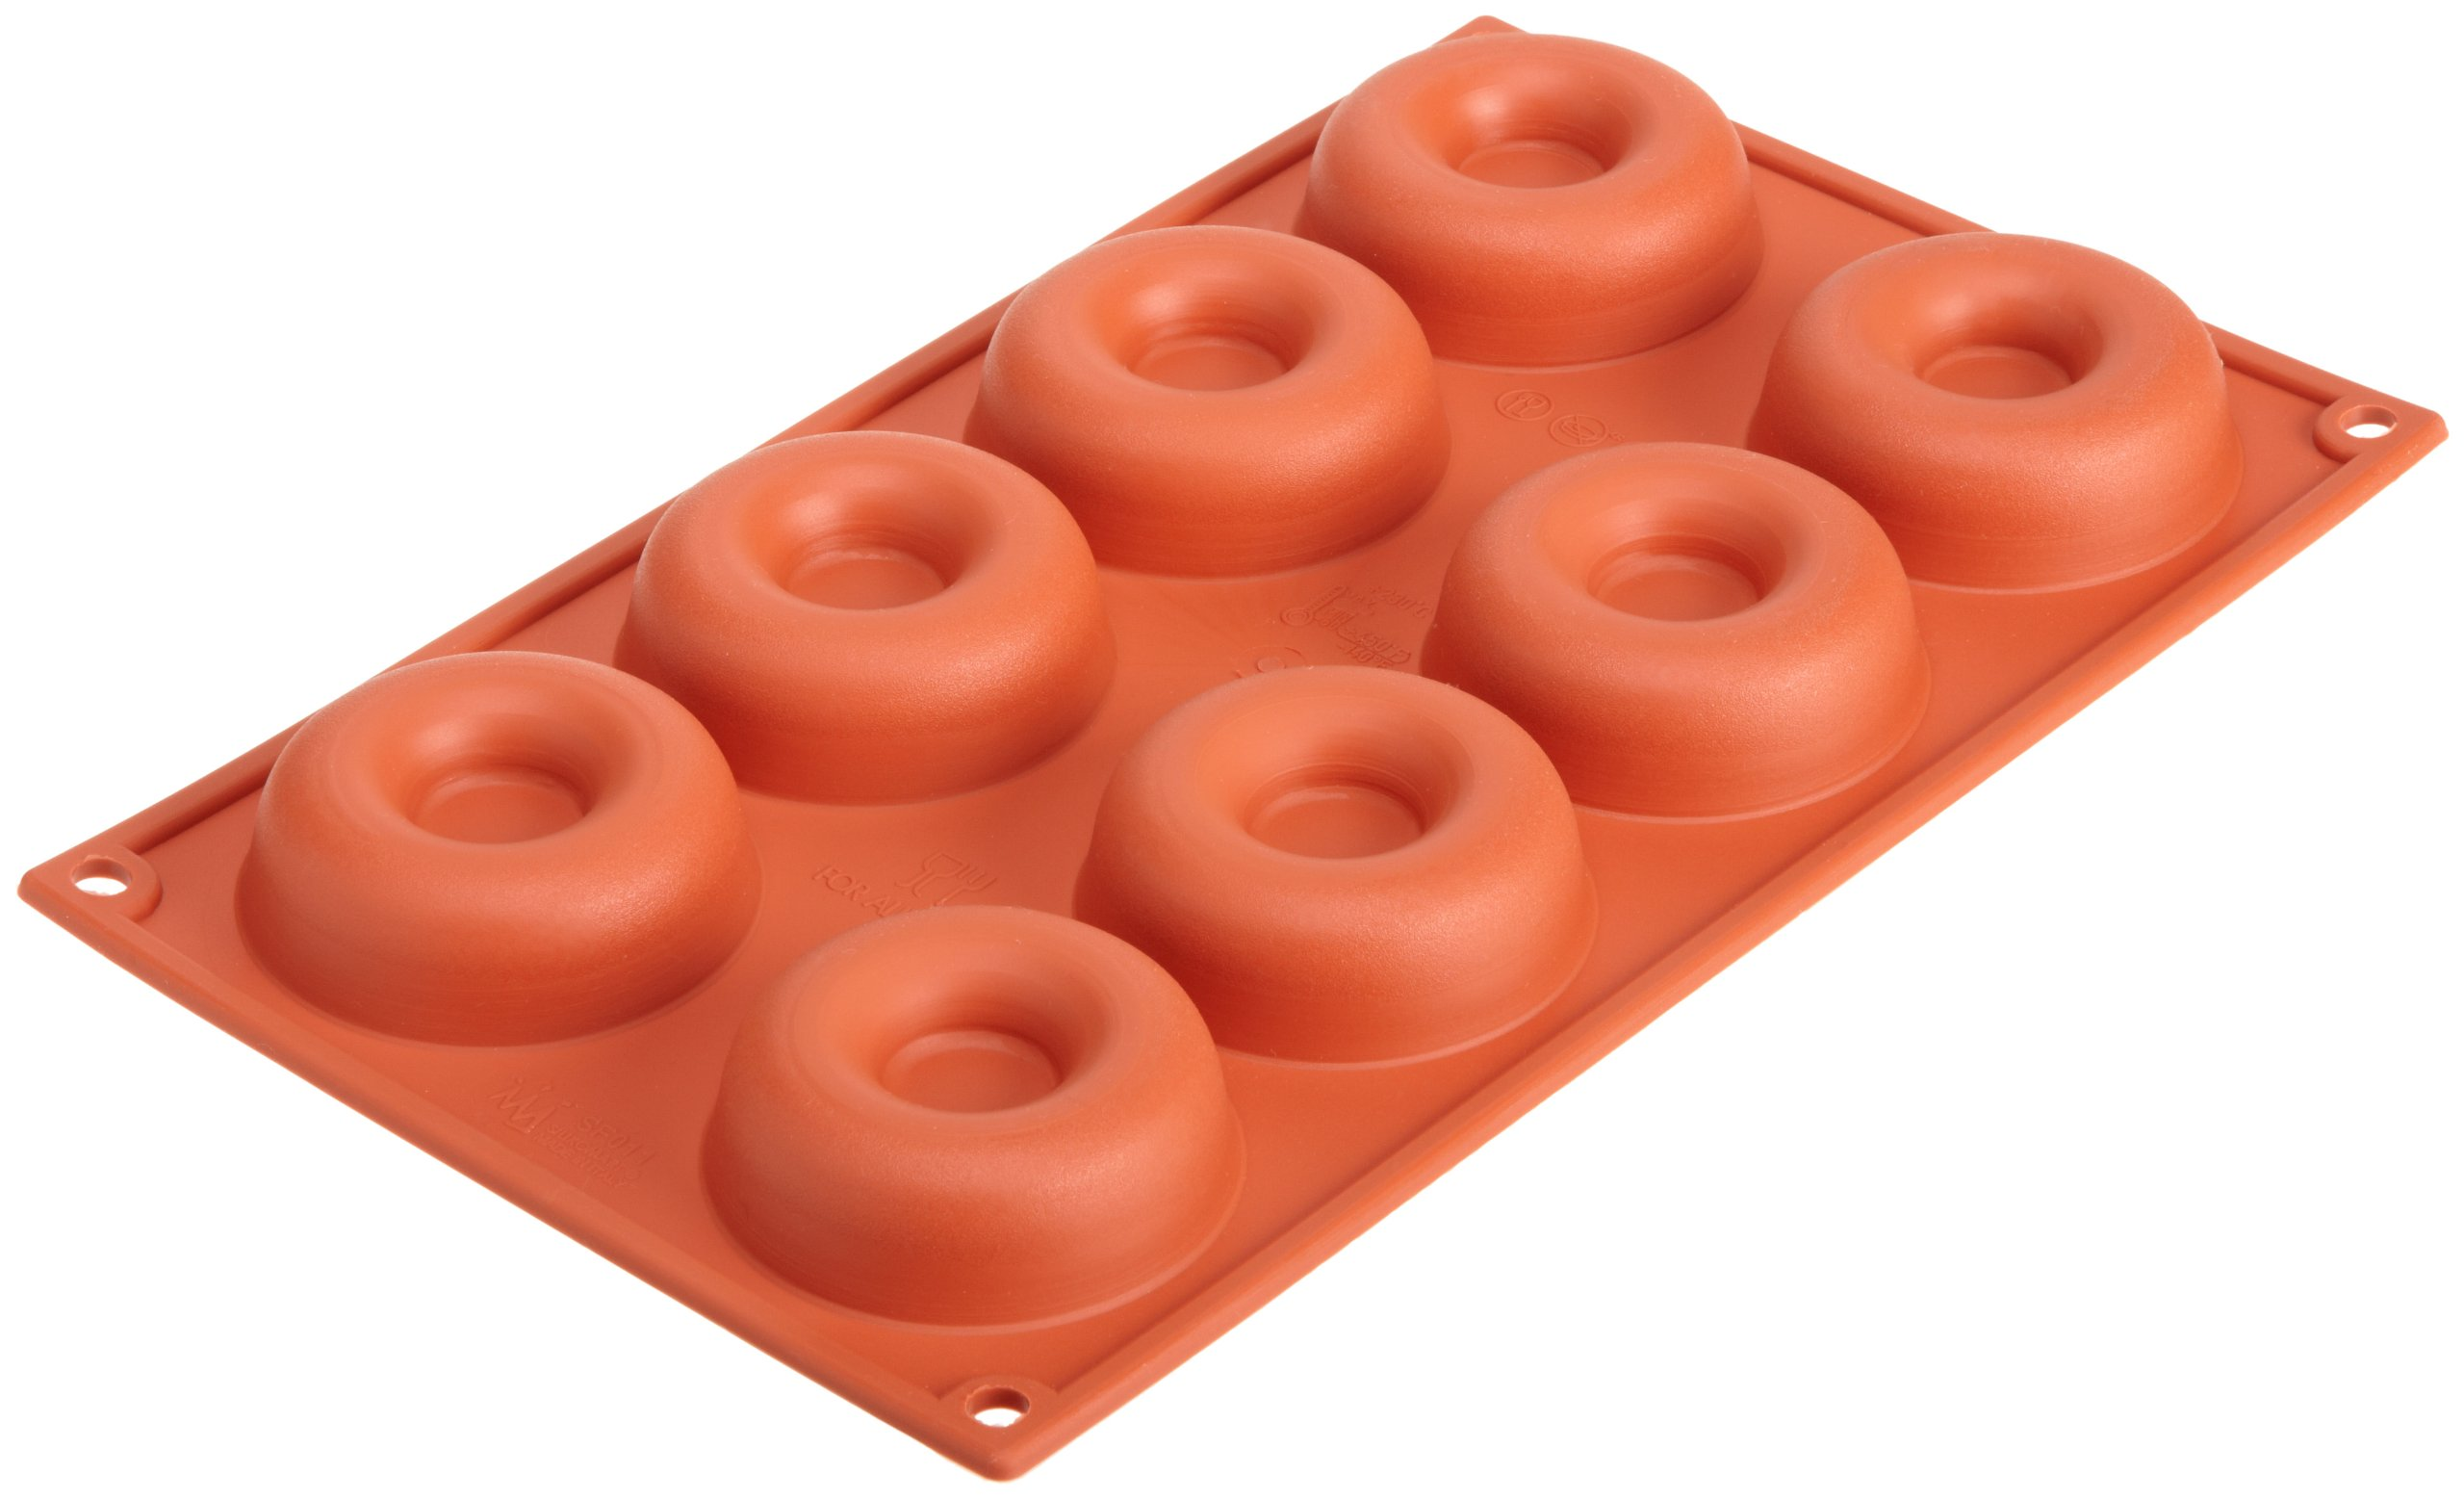 Silikomart Siliconflex Small Savarin Mold by Silikomart